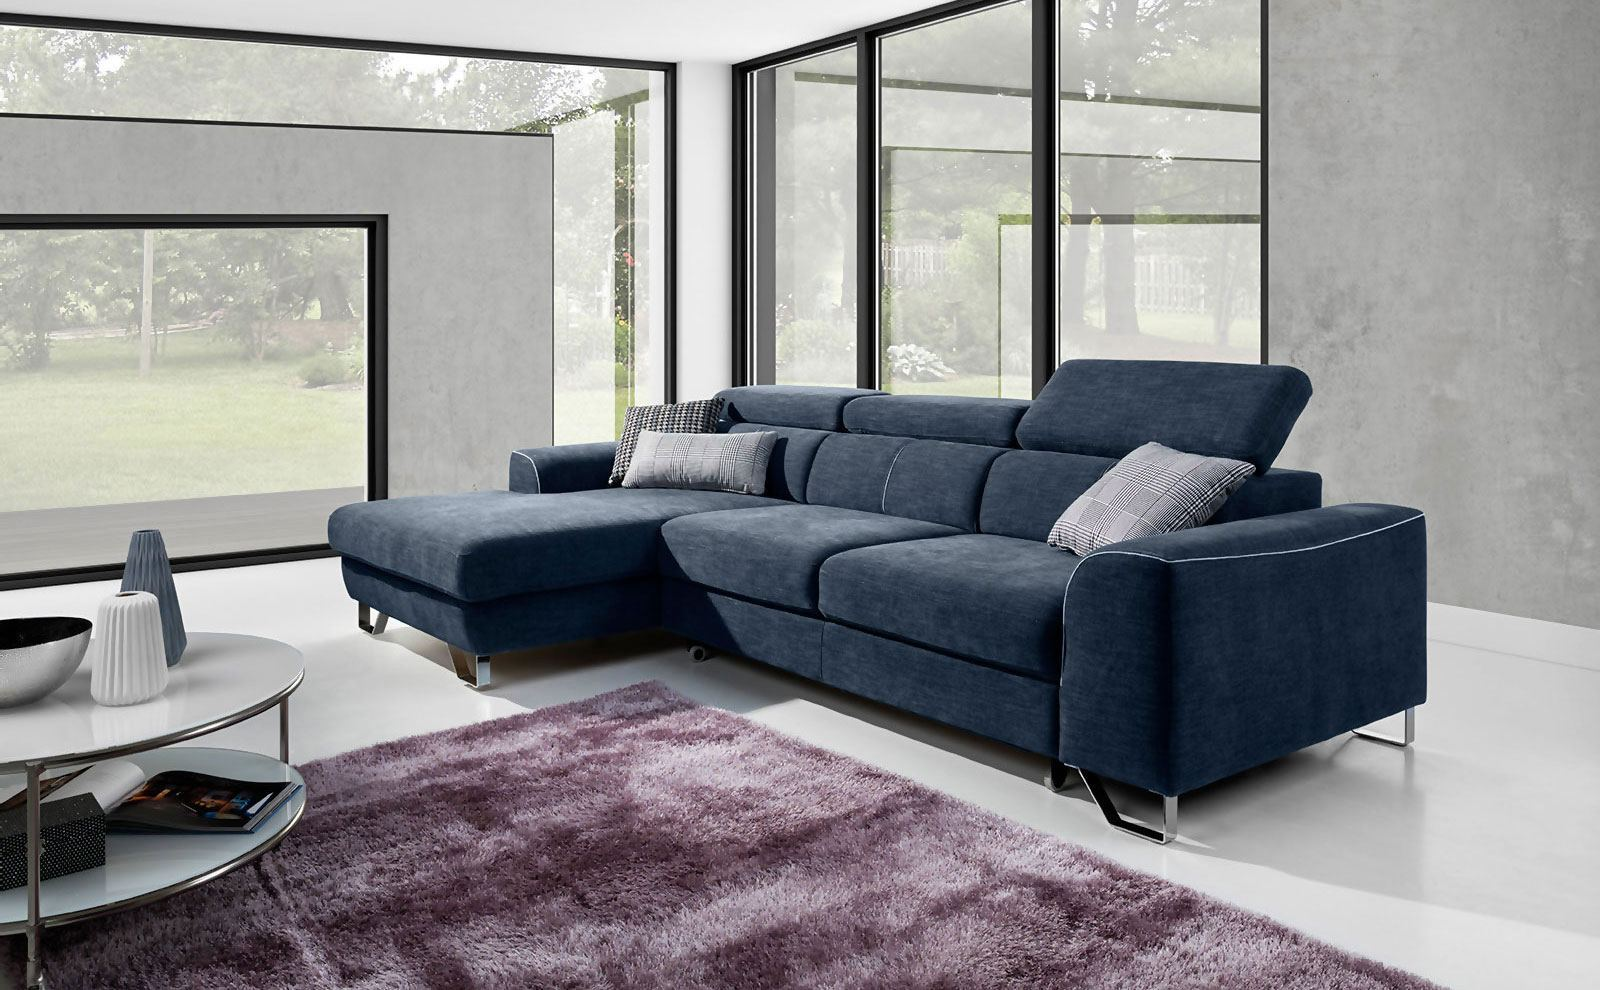 The best quality modern furniture 6 months free credit apply ...